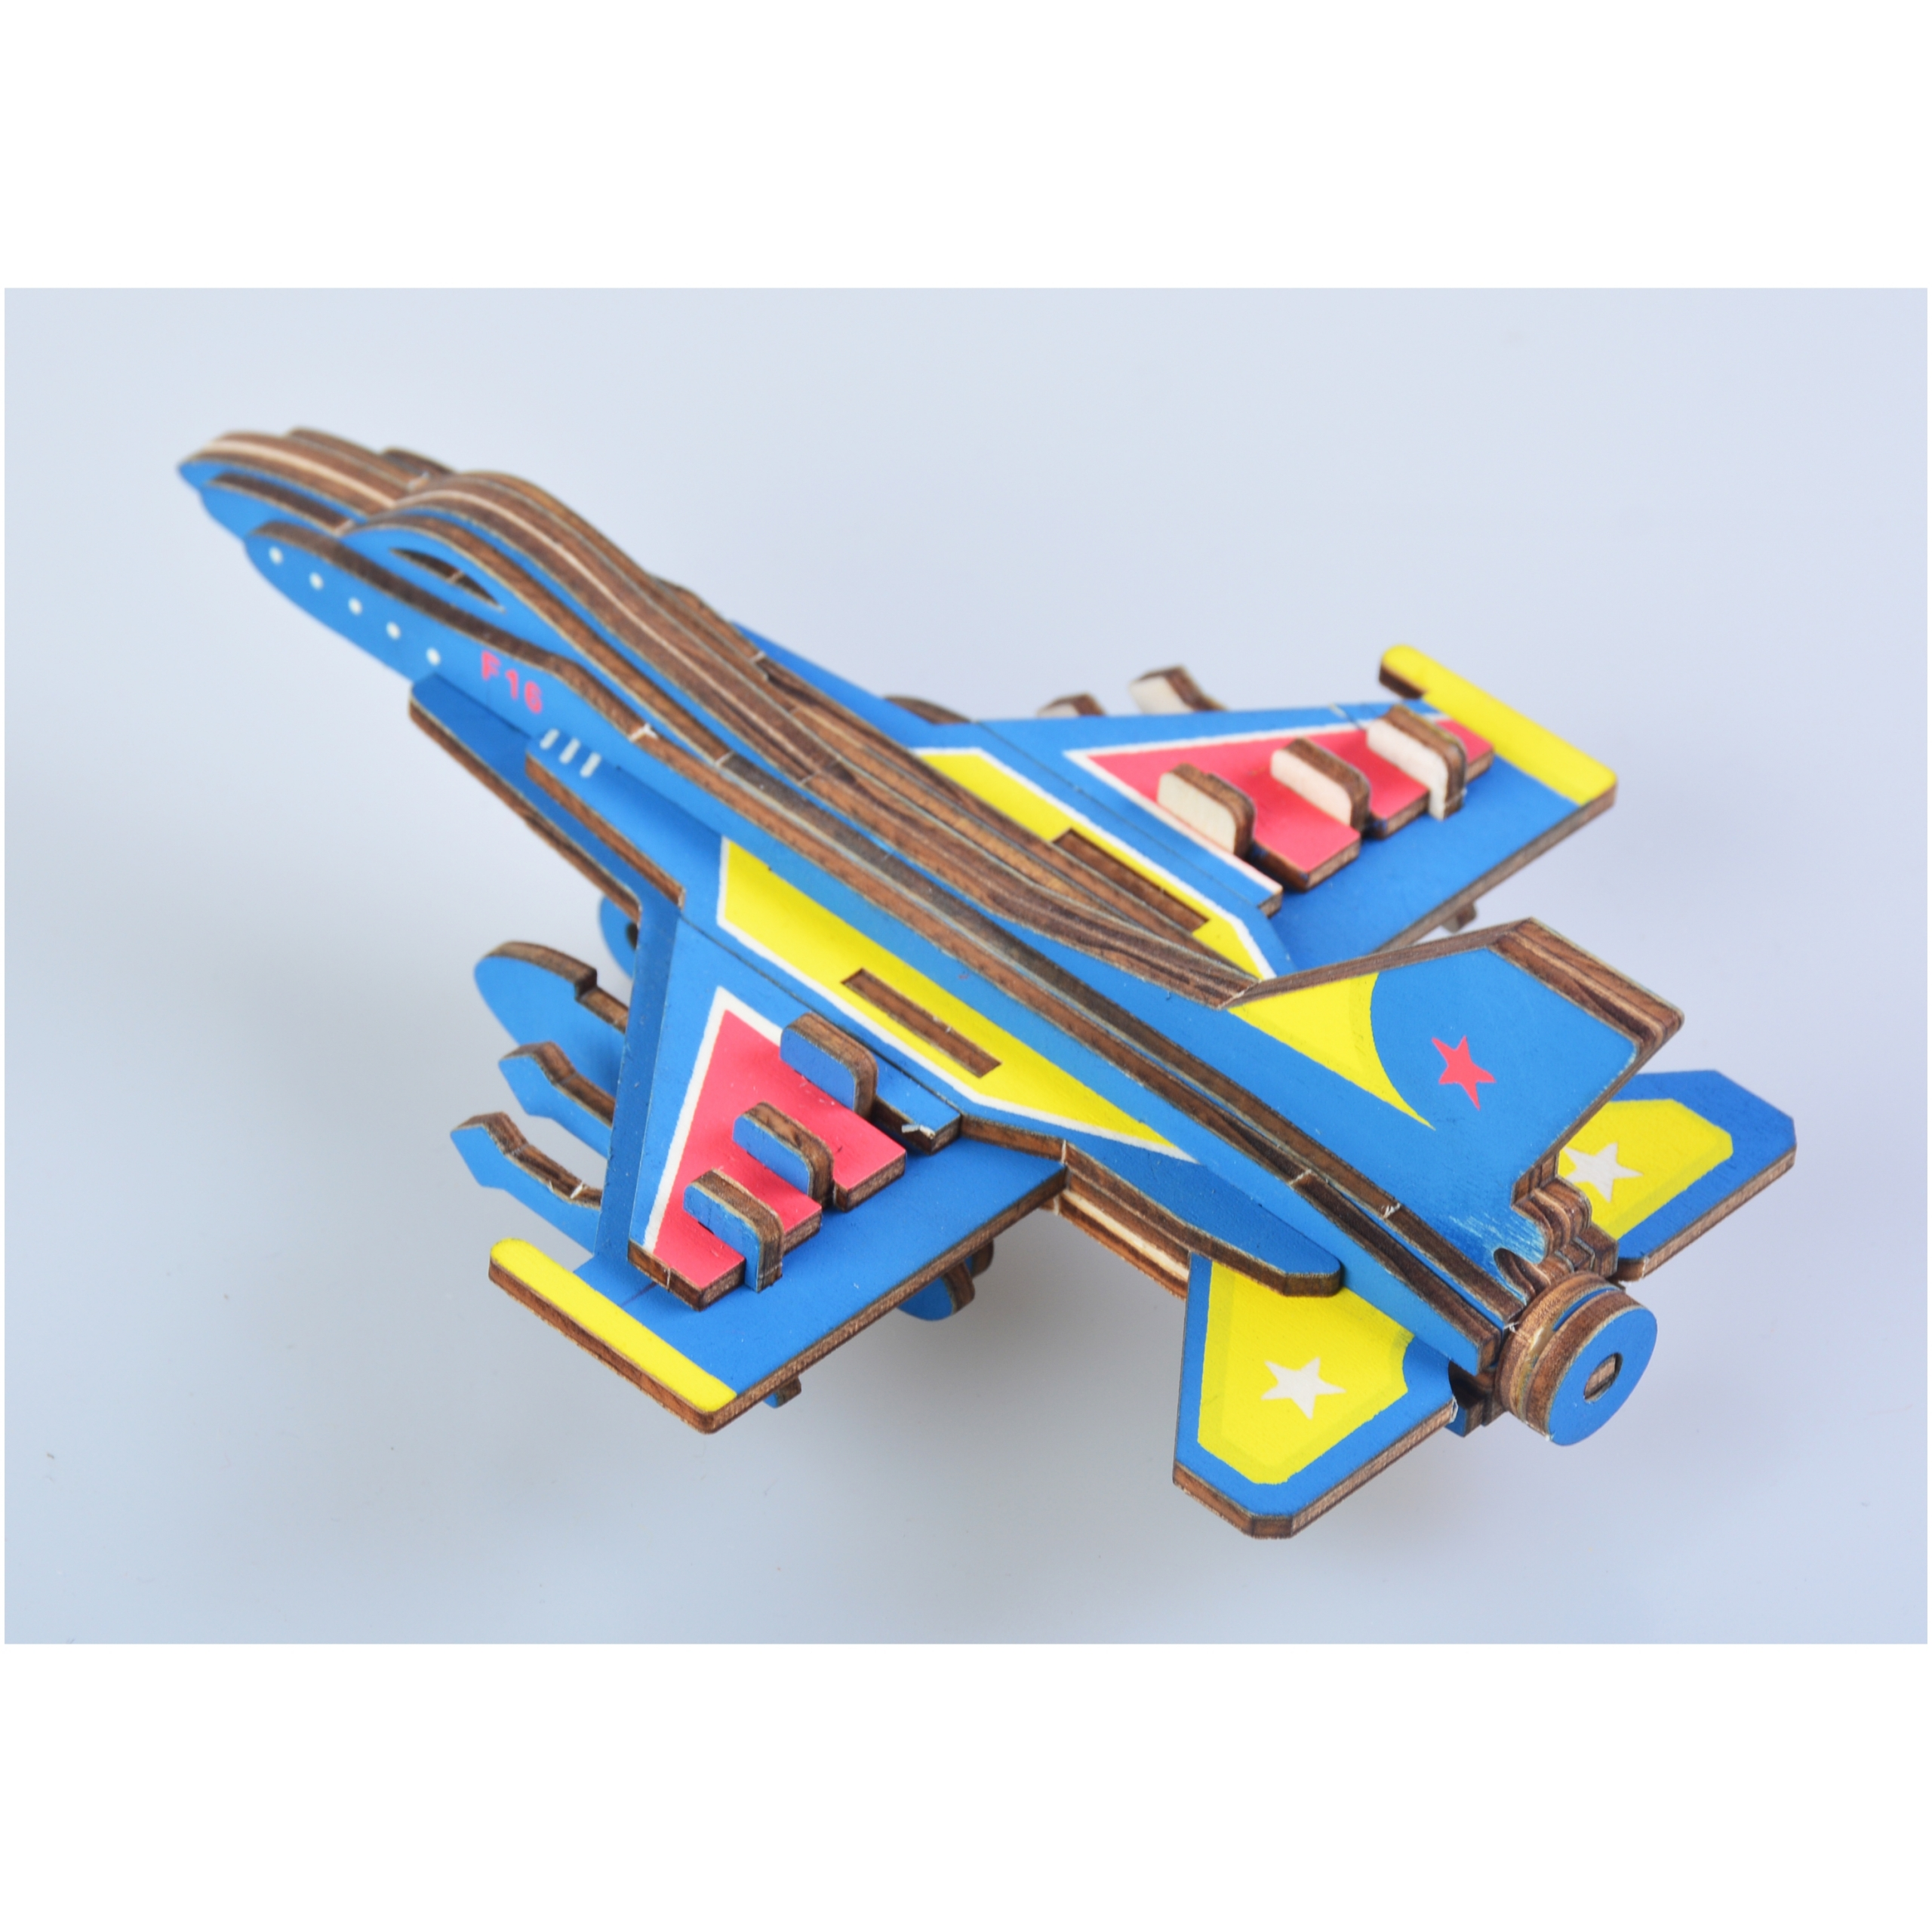 F16 Fighter Plane 3D children jigsaw puzzle toy